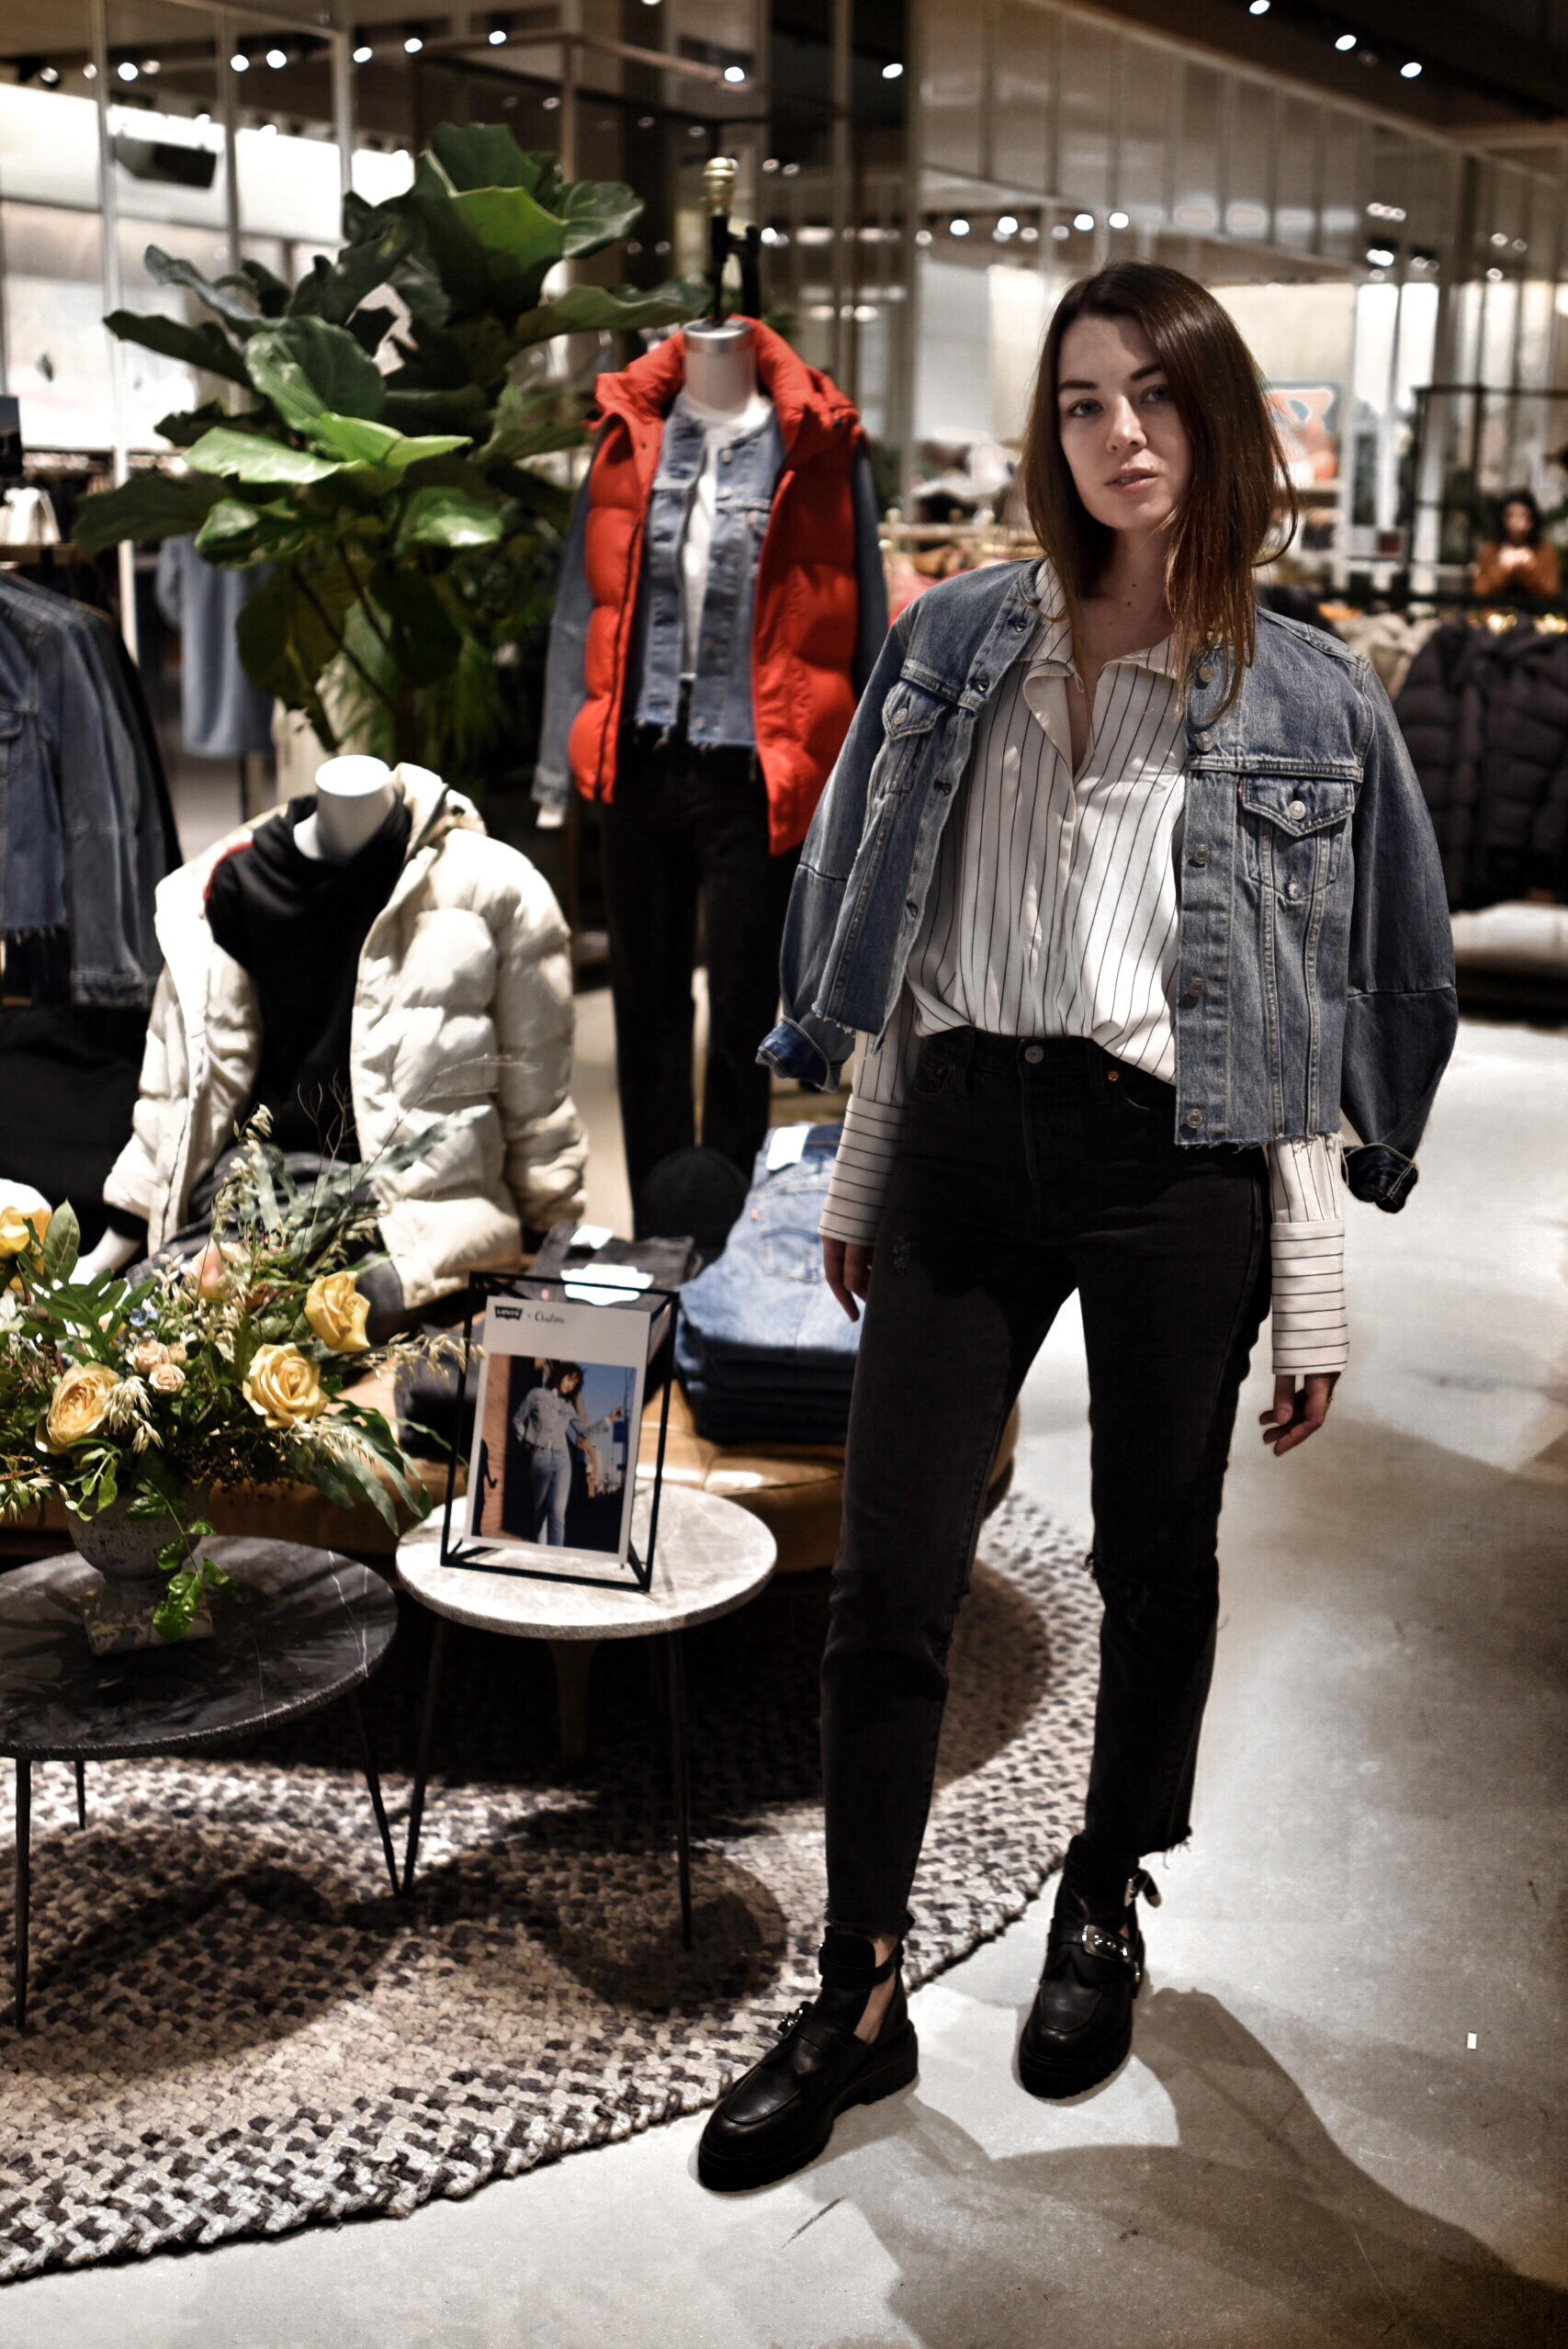 Aritzia Teamed Up with Levi's for a Denim Collection. - And I was over at Yorkdale Shopping Centre at the Aritzia store to celebrate the launch of the new collaboration!Did you catch my takeover on Aritzia's Instagram stories yesterday? With two styles and four exclusive washes of vintage inspired Levi's denim, I couldn't help but try them all on. Jeans are my go-to everyday. So I'm all about this collab. And today I took my favourite new jeans to the streets. I'm wearing the Wedgie style in 'Forever Mine'. They are high waisted, and the perfect faded black wash. Obsessed!You can shop the collection online and in Aritzia stores!